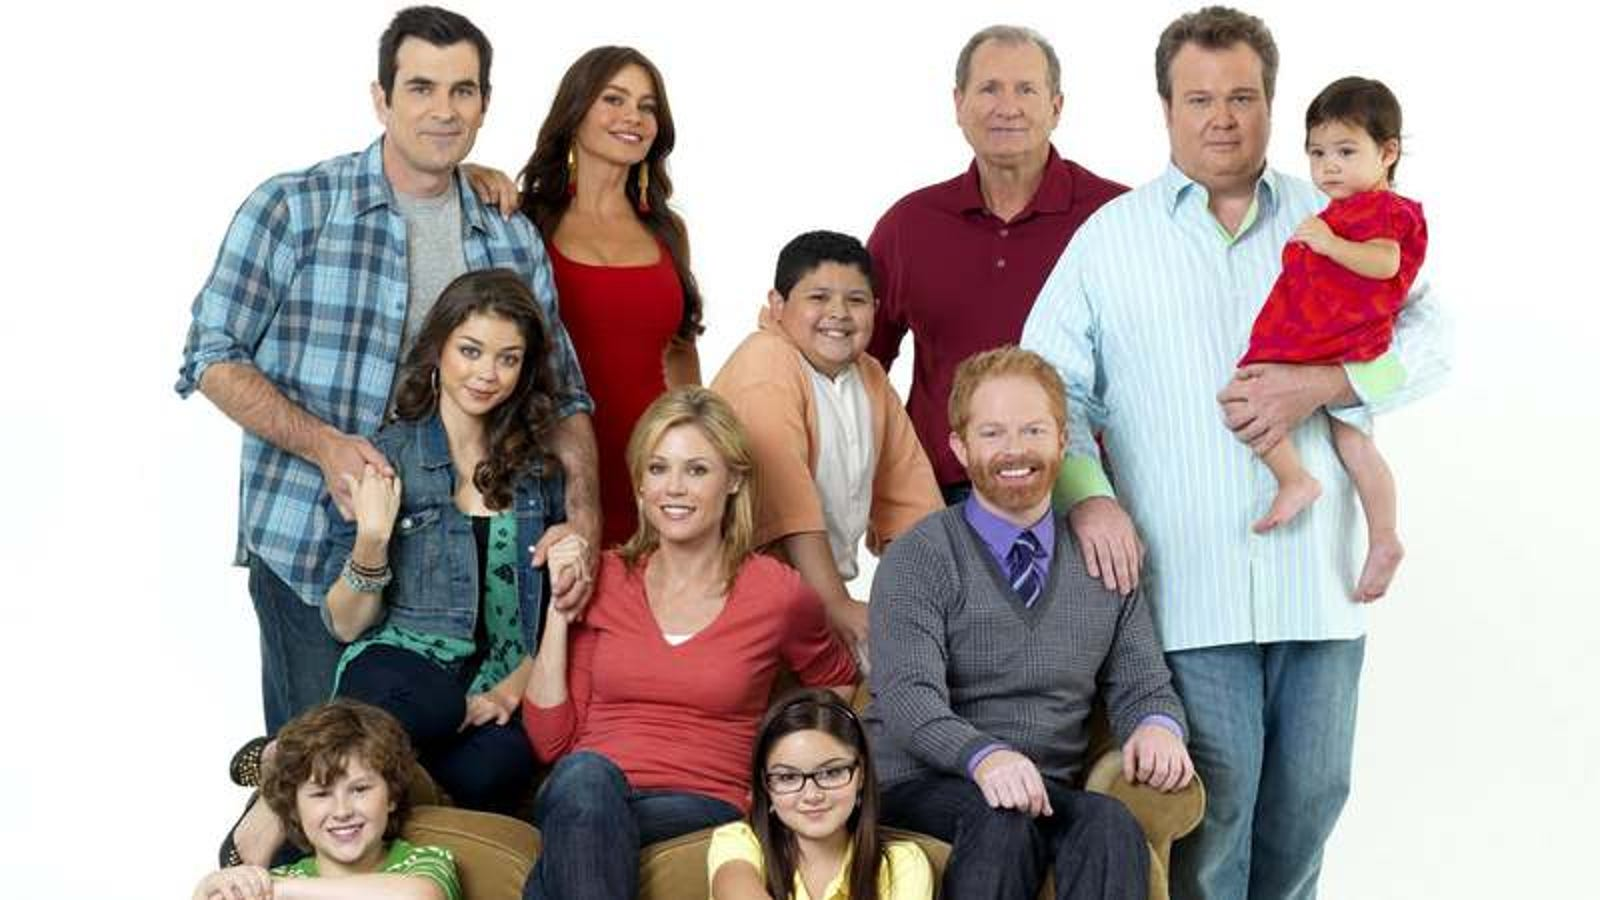 10 Modern Family Episodes Show Why Its Still One Of TVs Biggest Hits